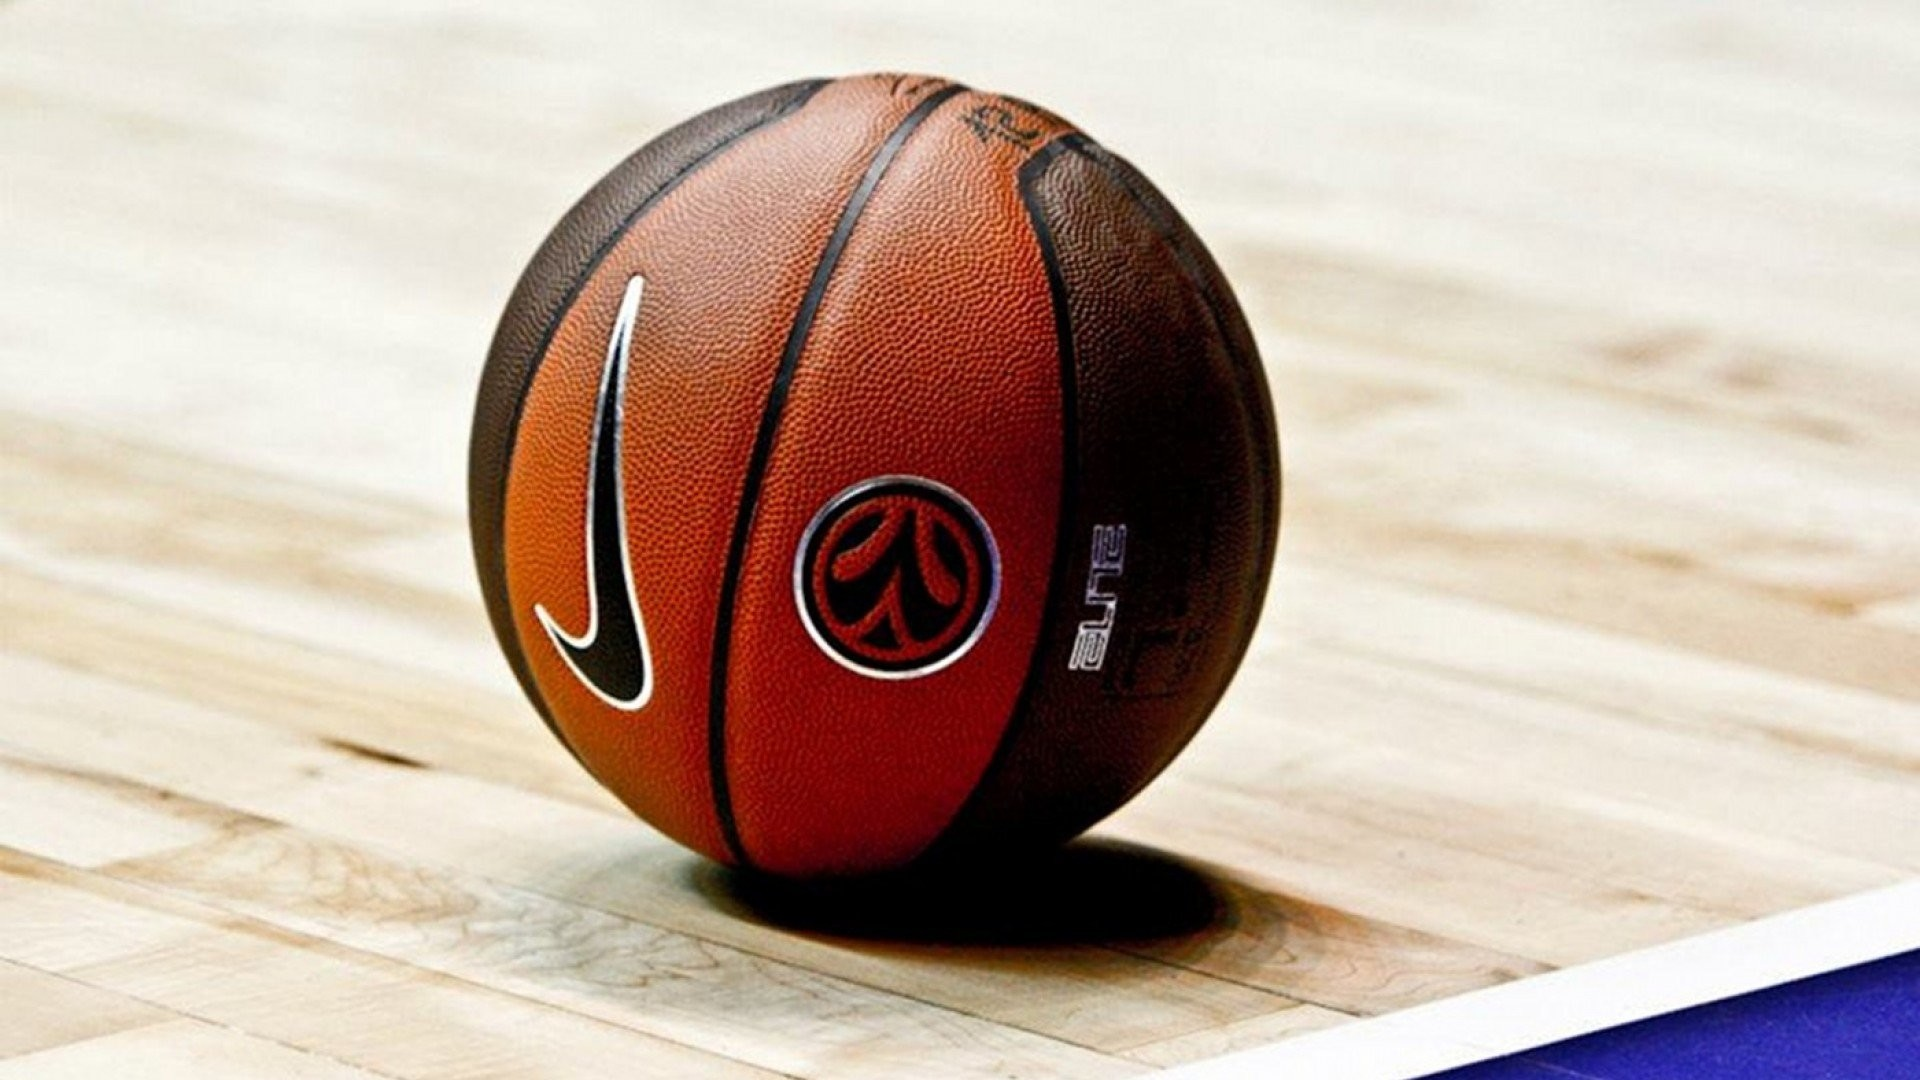 Nike Nba Wallpapers Quotes: Nike Basketball Wallpapers (60+ Images